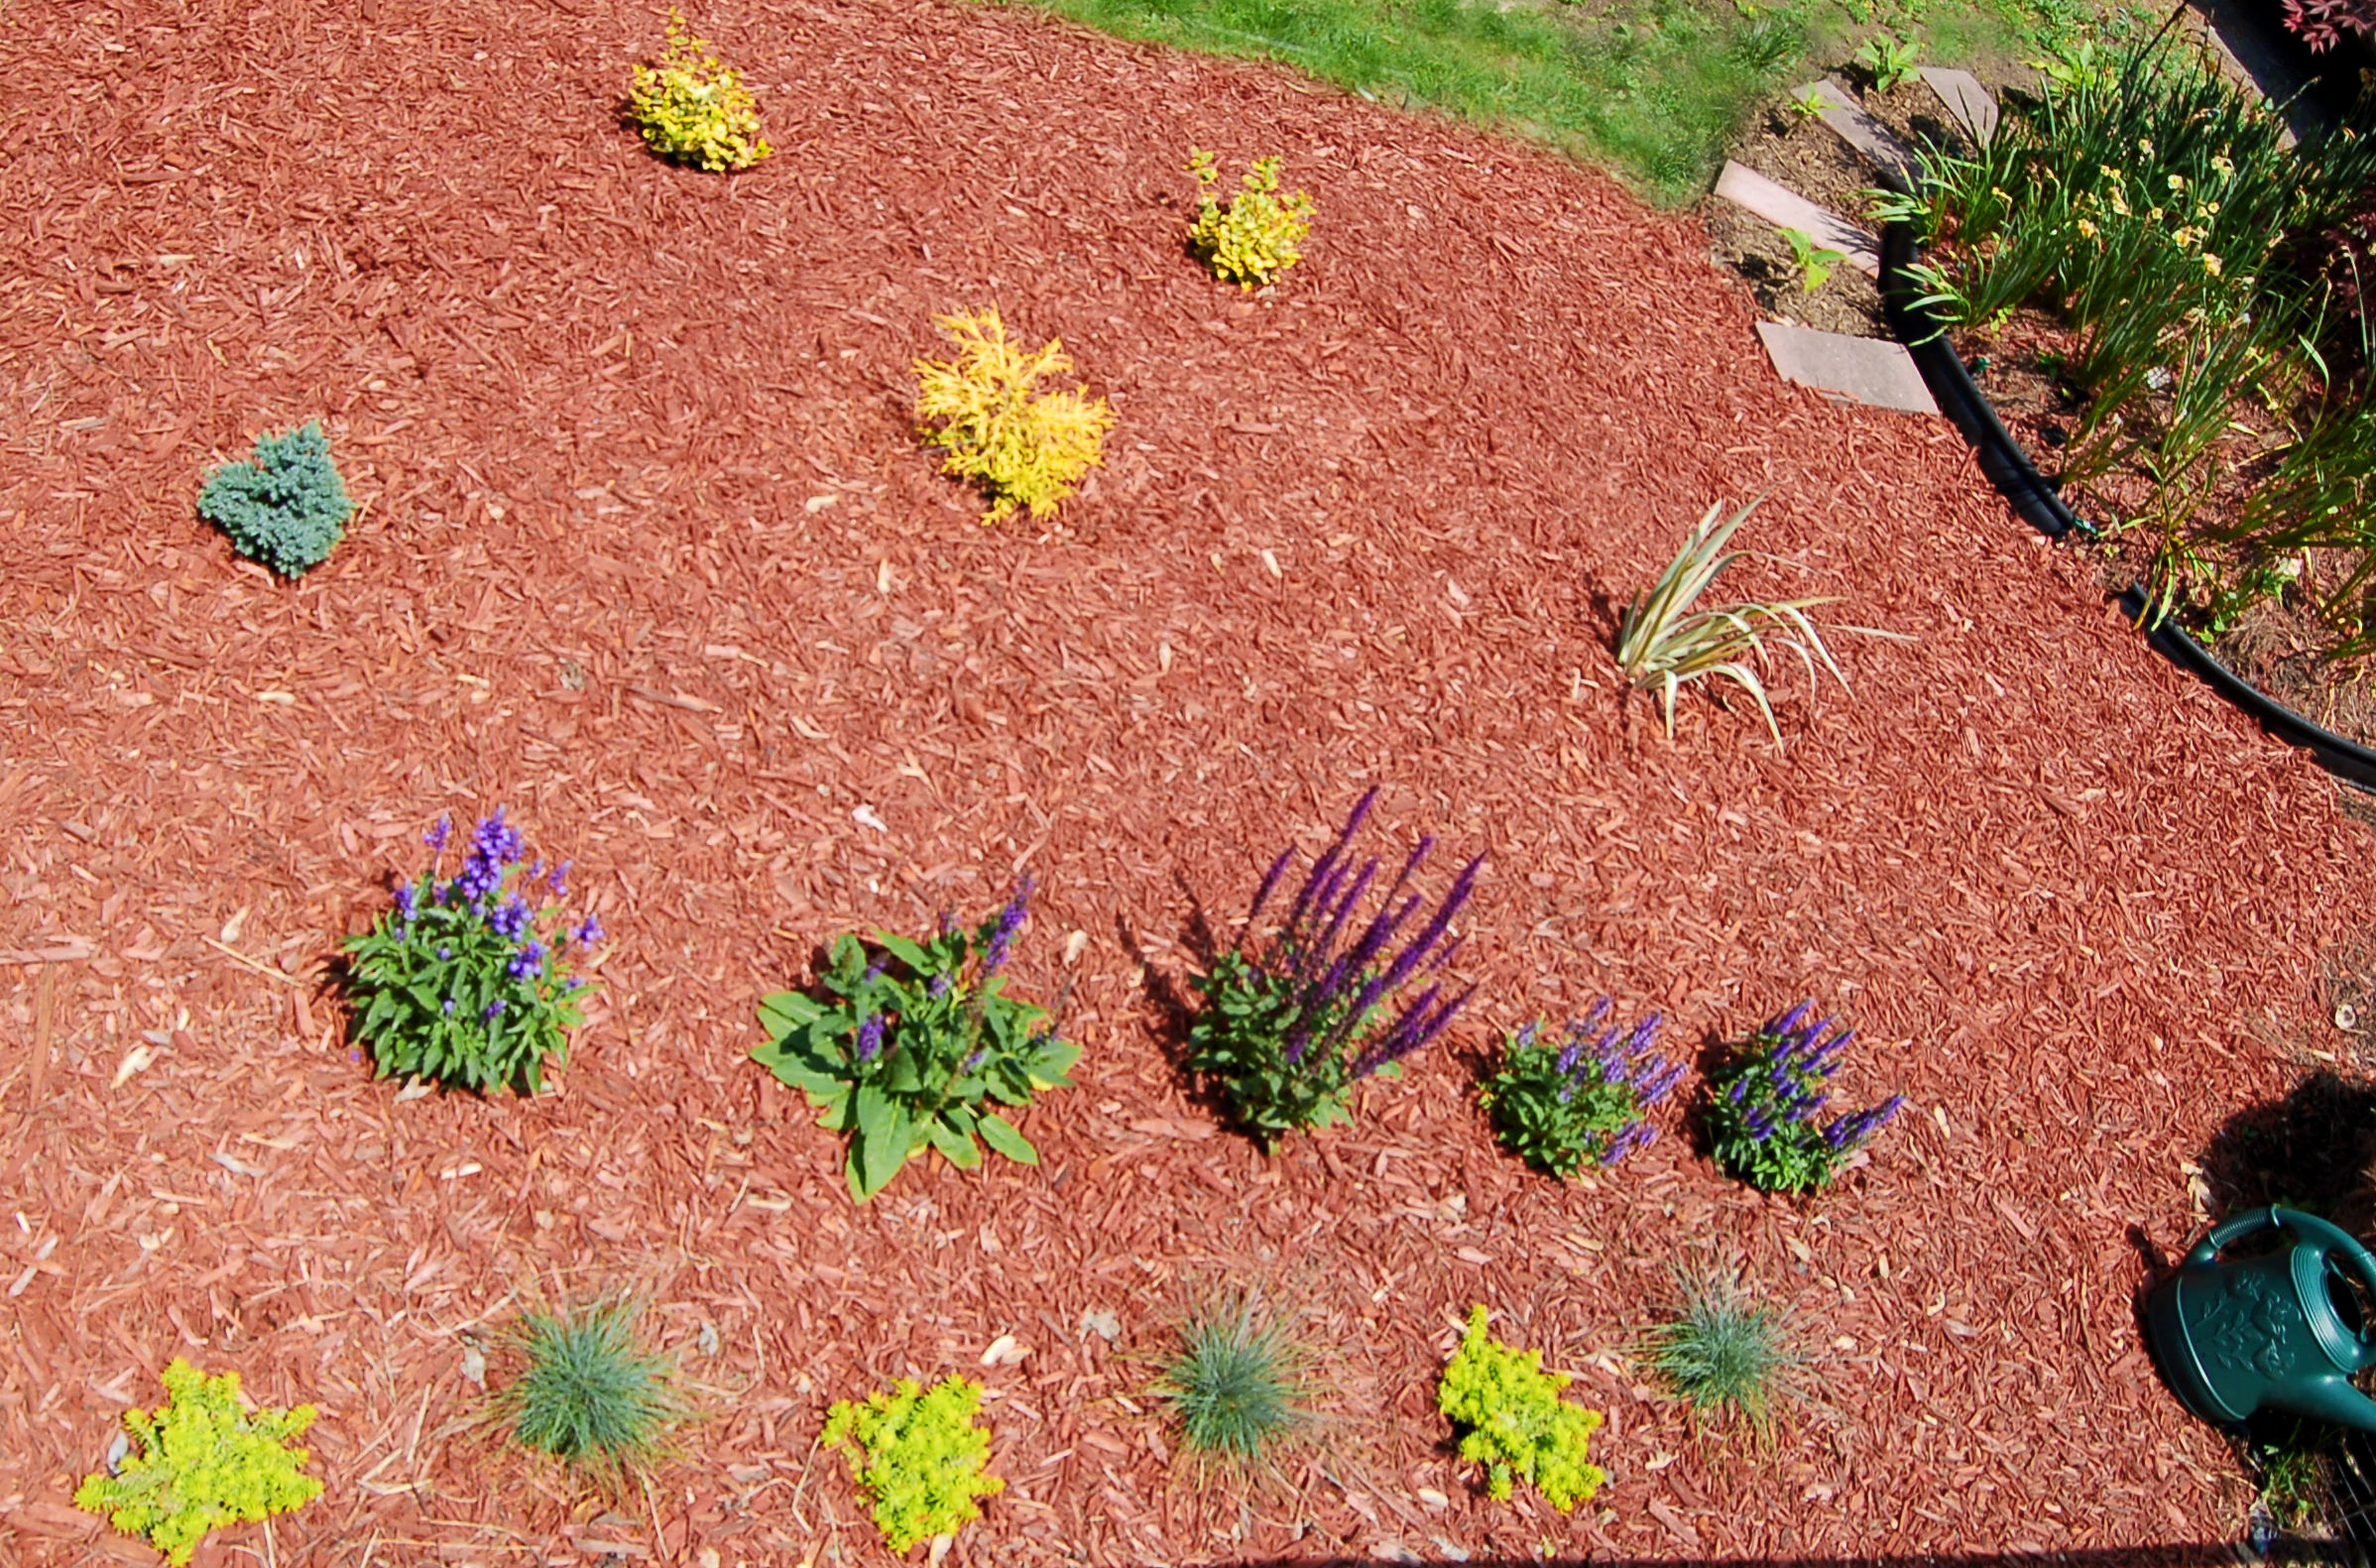 Clipart marajuana in an outdoor garden setting with hills graphic royalty free stock Creating a Planting Bed, and Choosing and Arranging the Flowers graphic royalty free stock